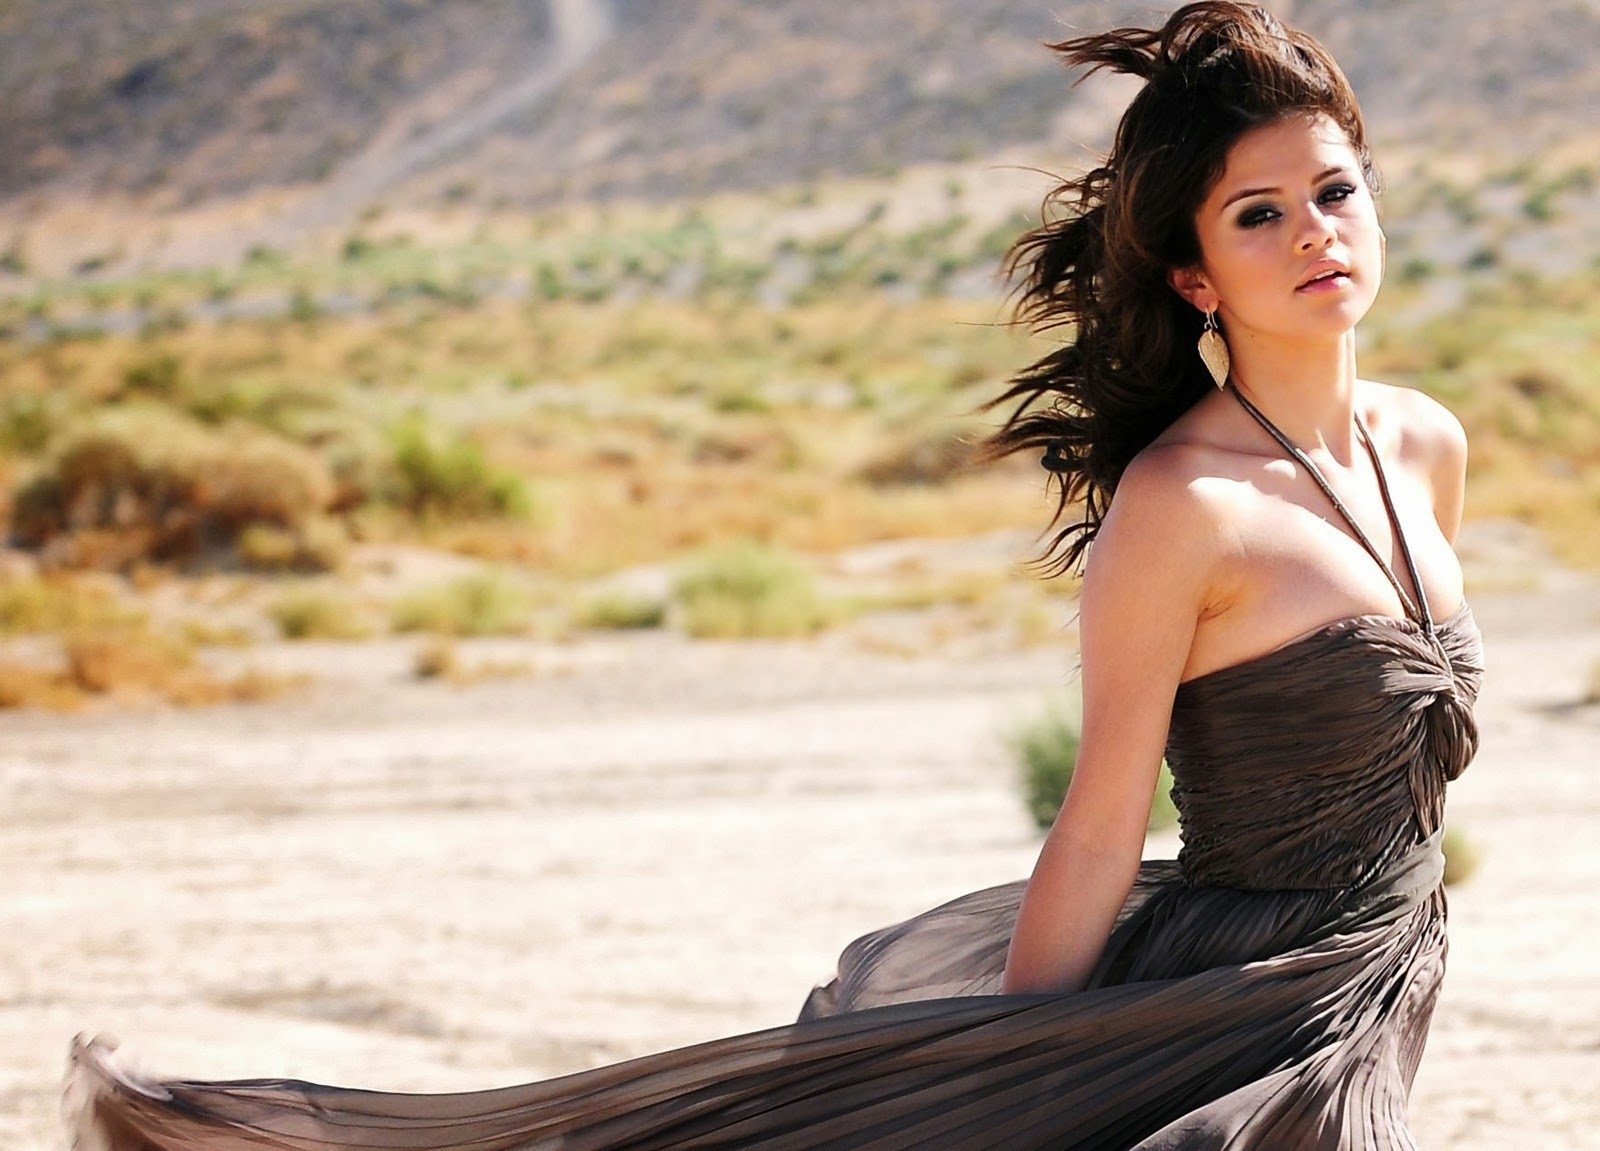 All New Wallpaper : Selena Gomez HD Wallpapers Free Download